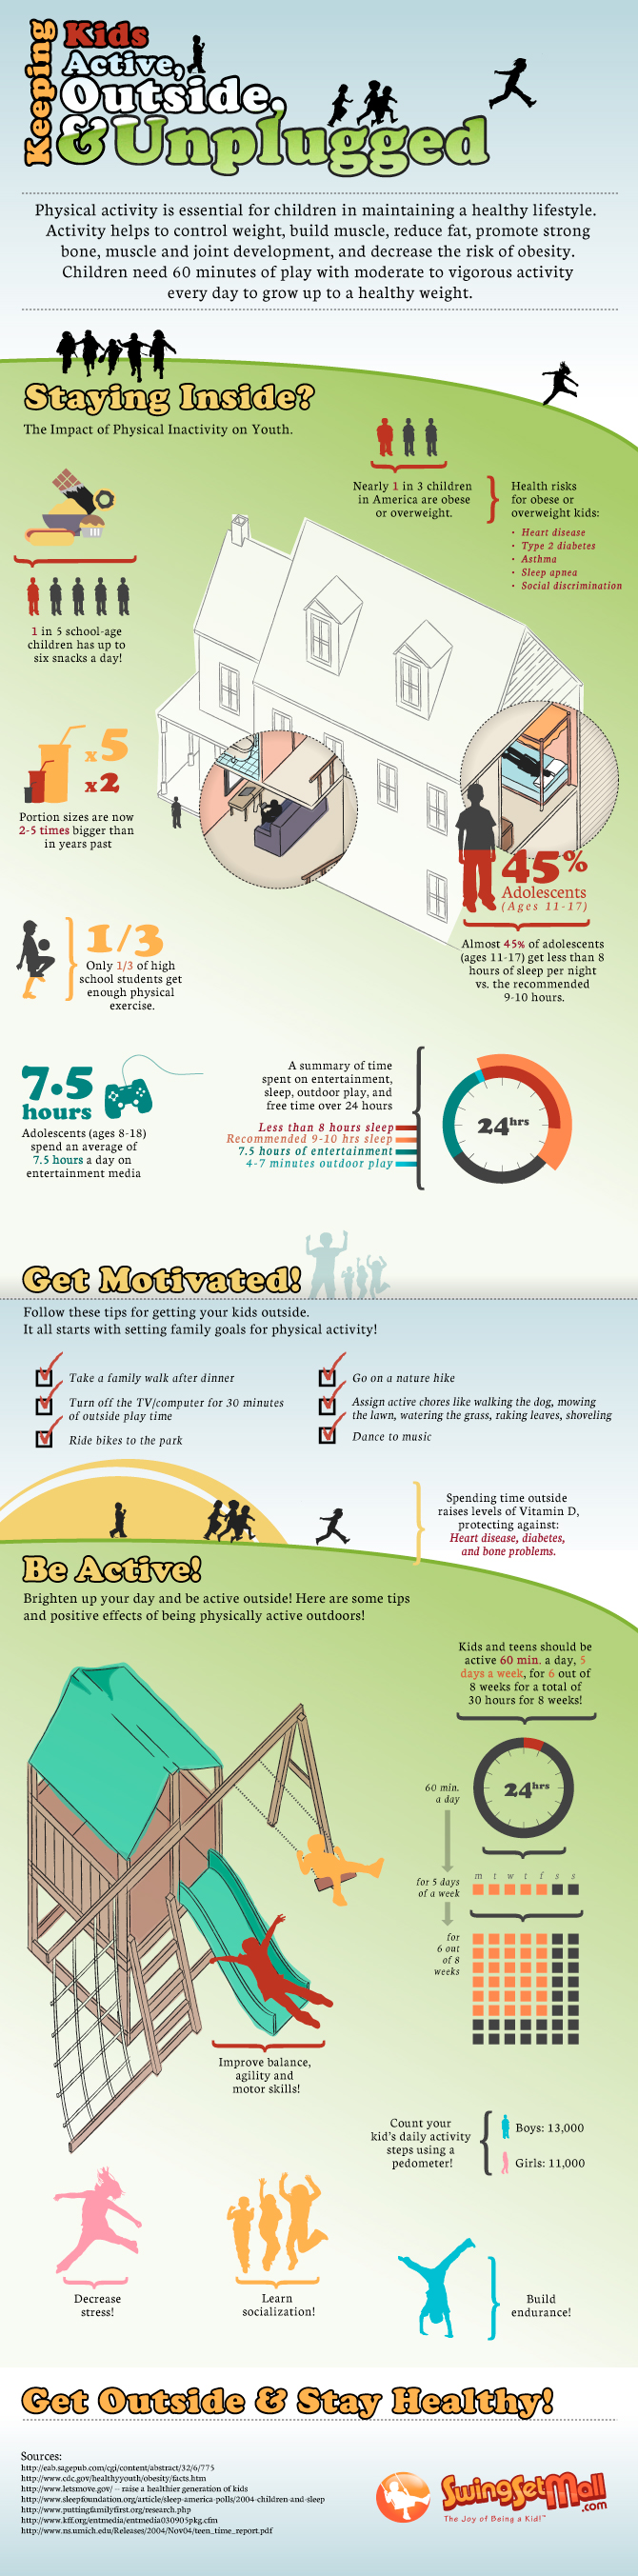 Keeping Kids Active Infographic